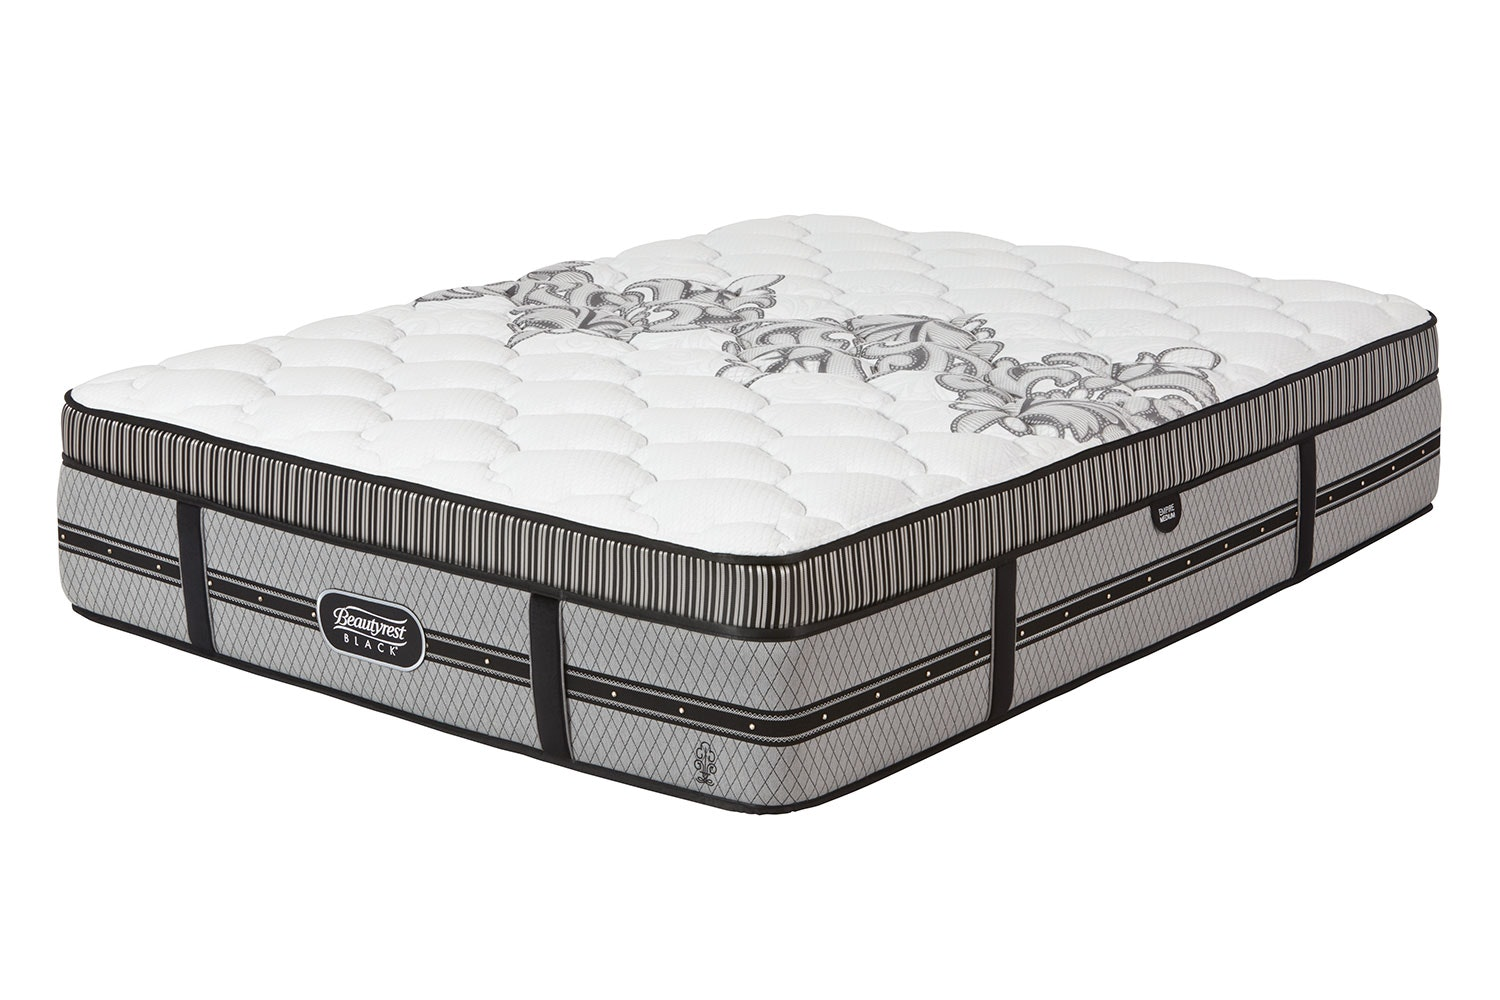 Empire Plush Queen Mattress by Beautyrest Black